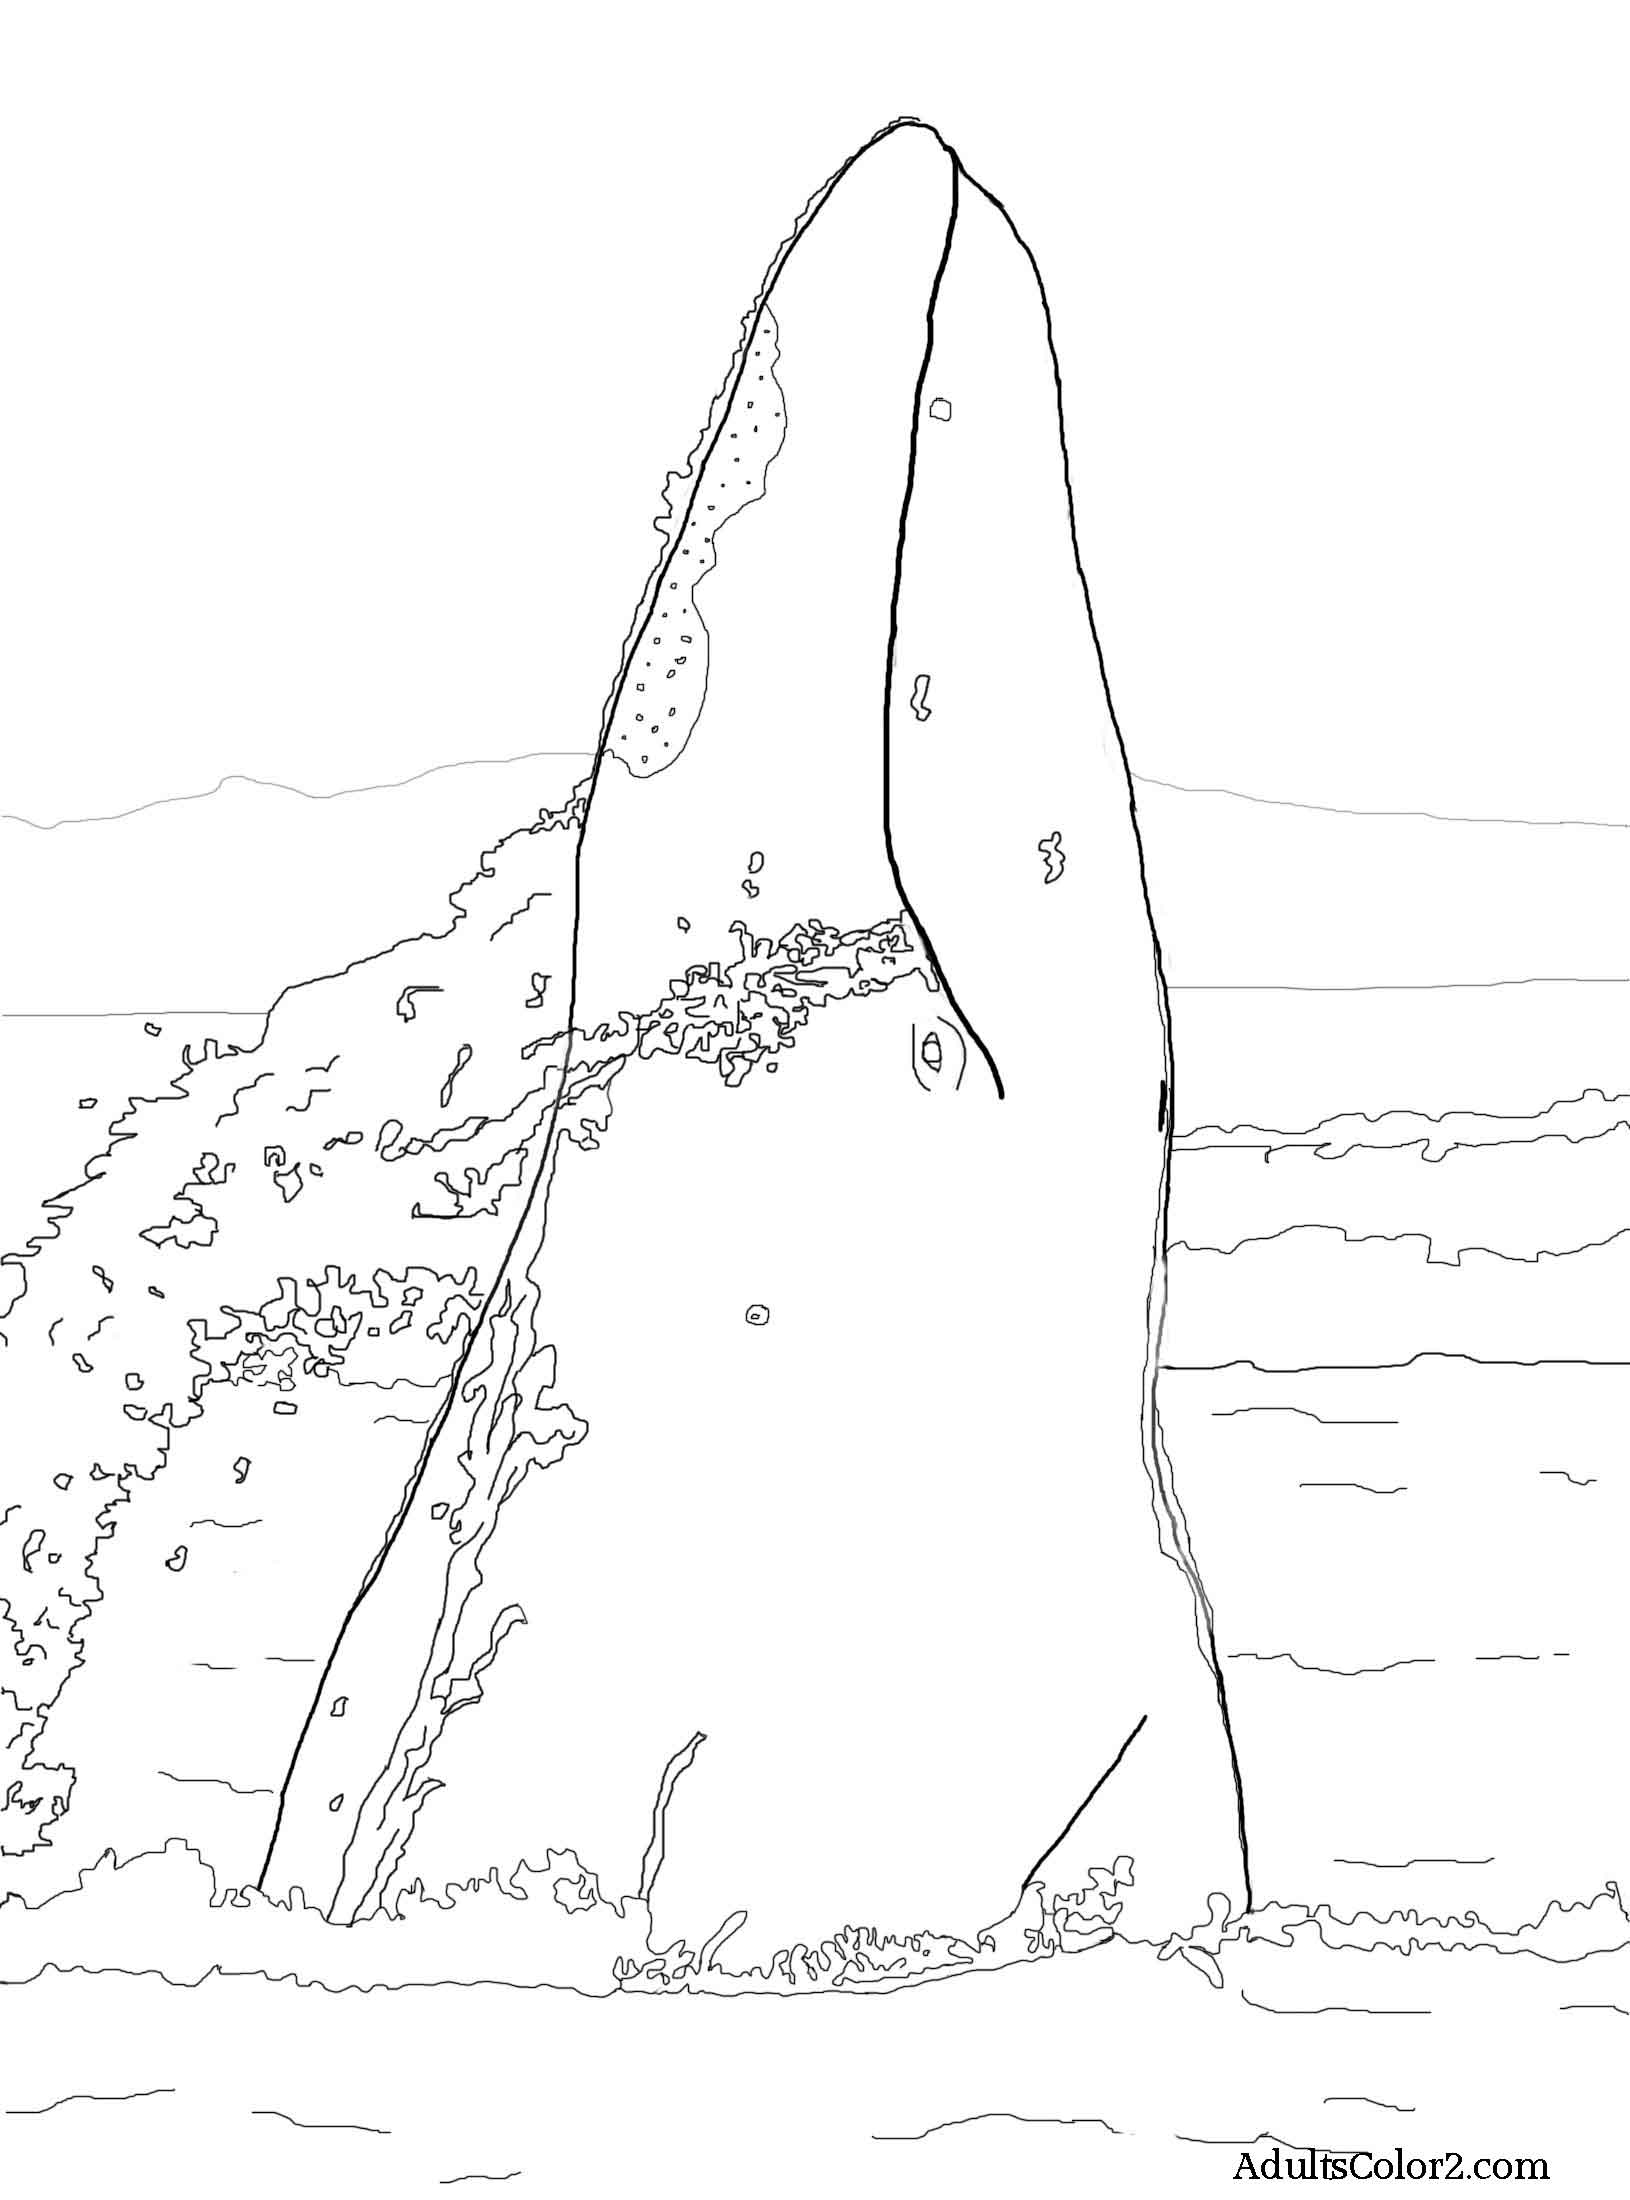 Drawing of a gray whale breaching.